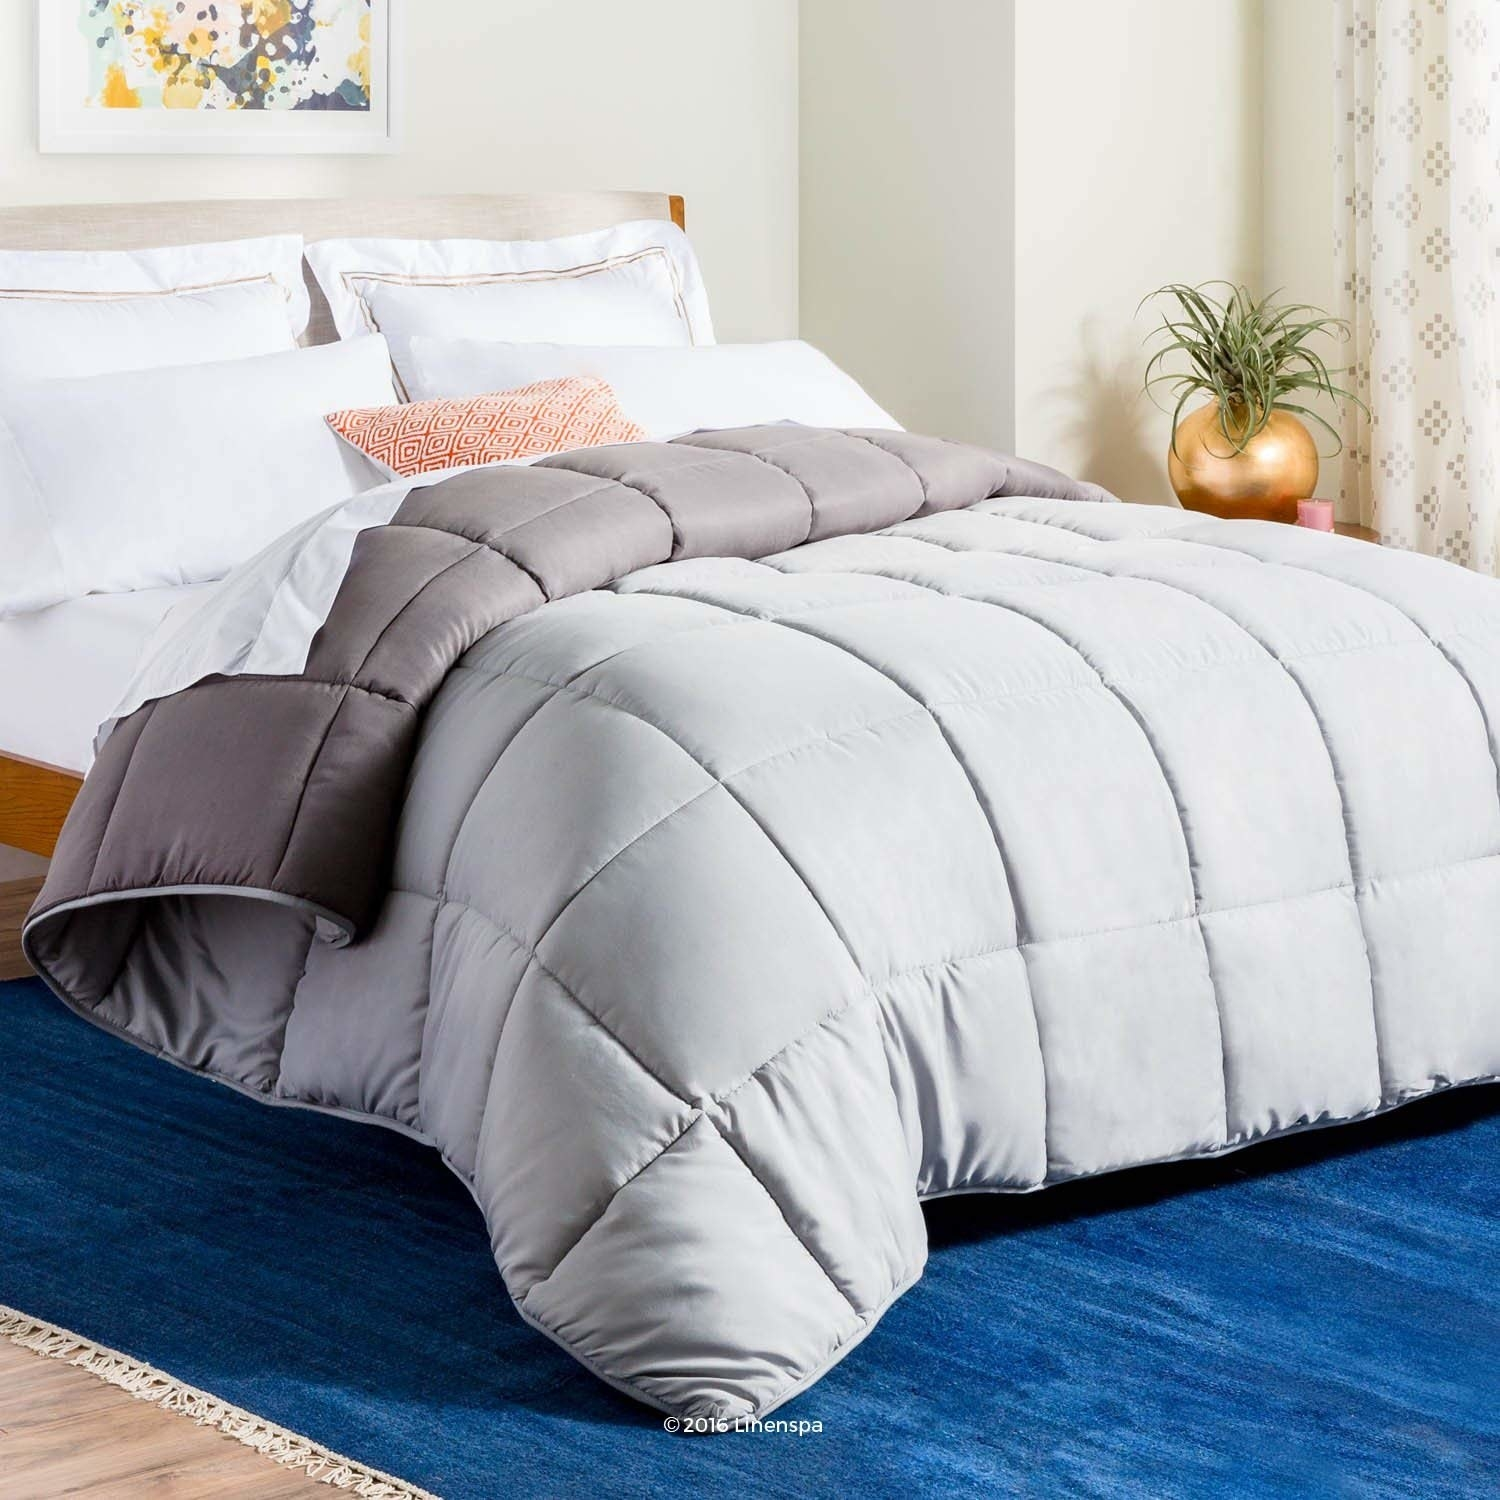 gray fluffy looking comforter on a bed